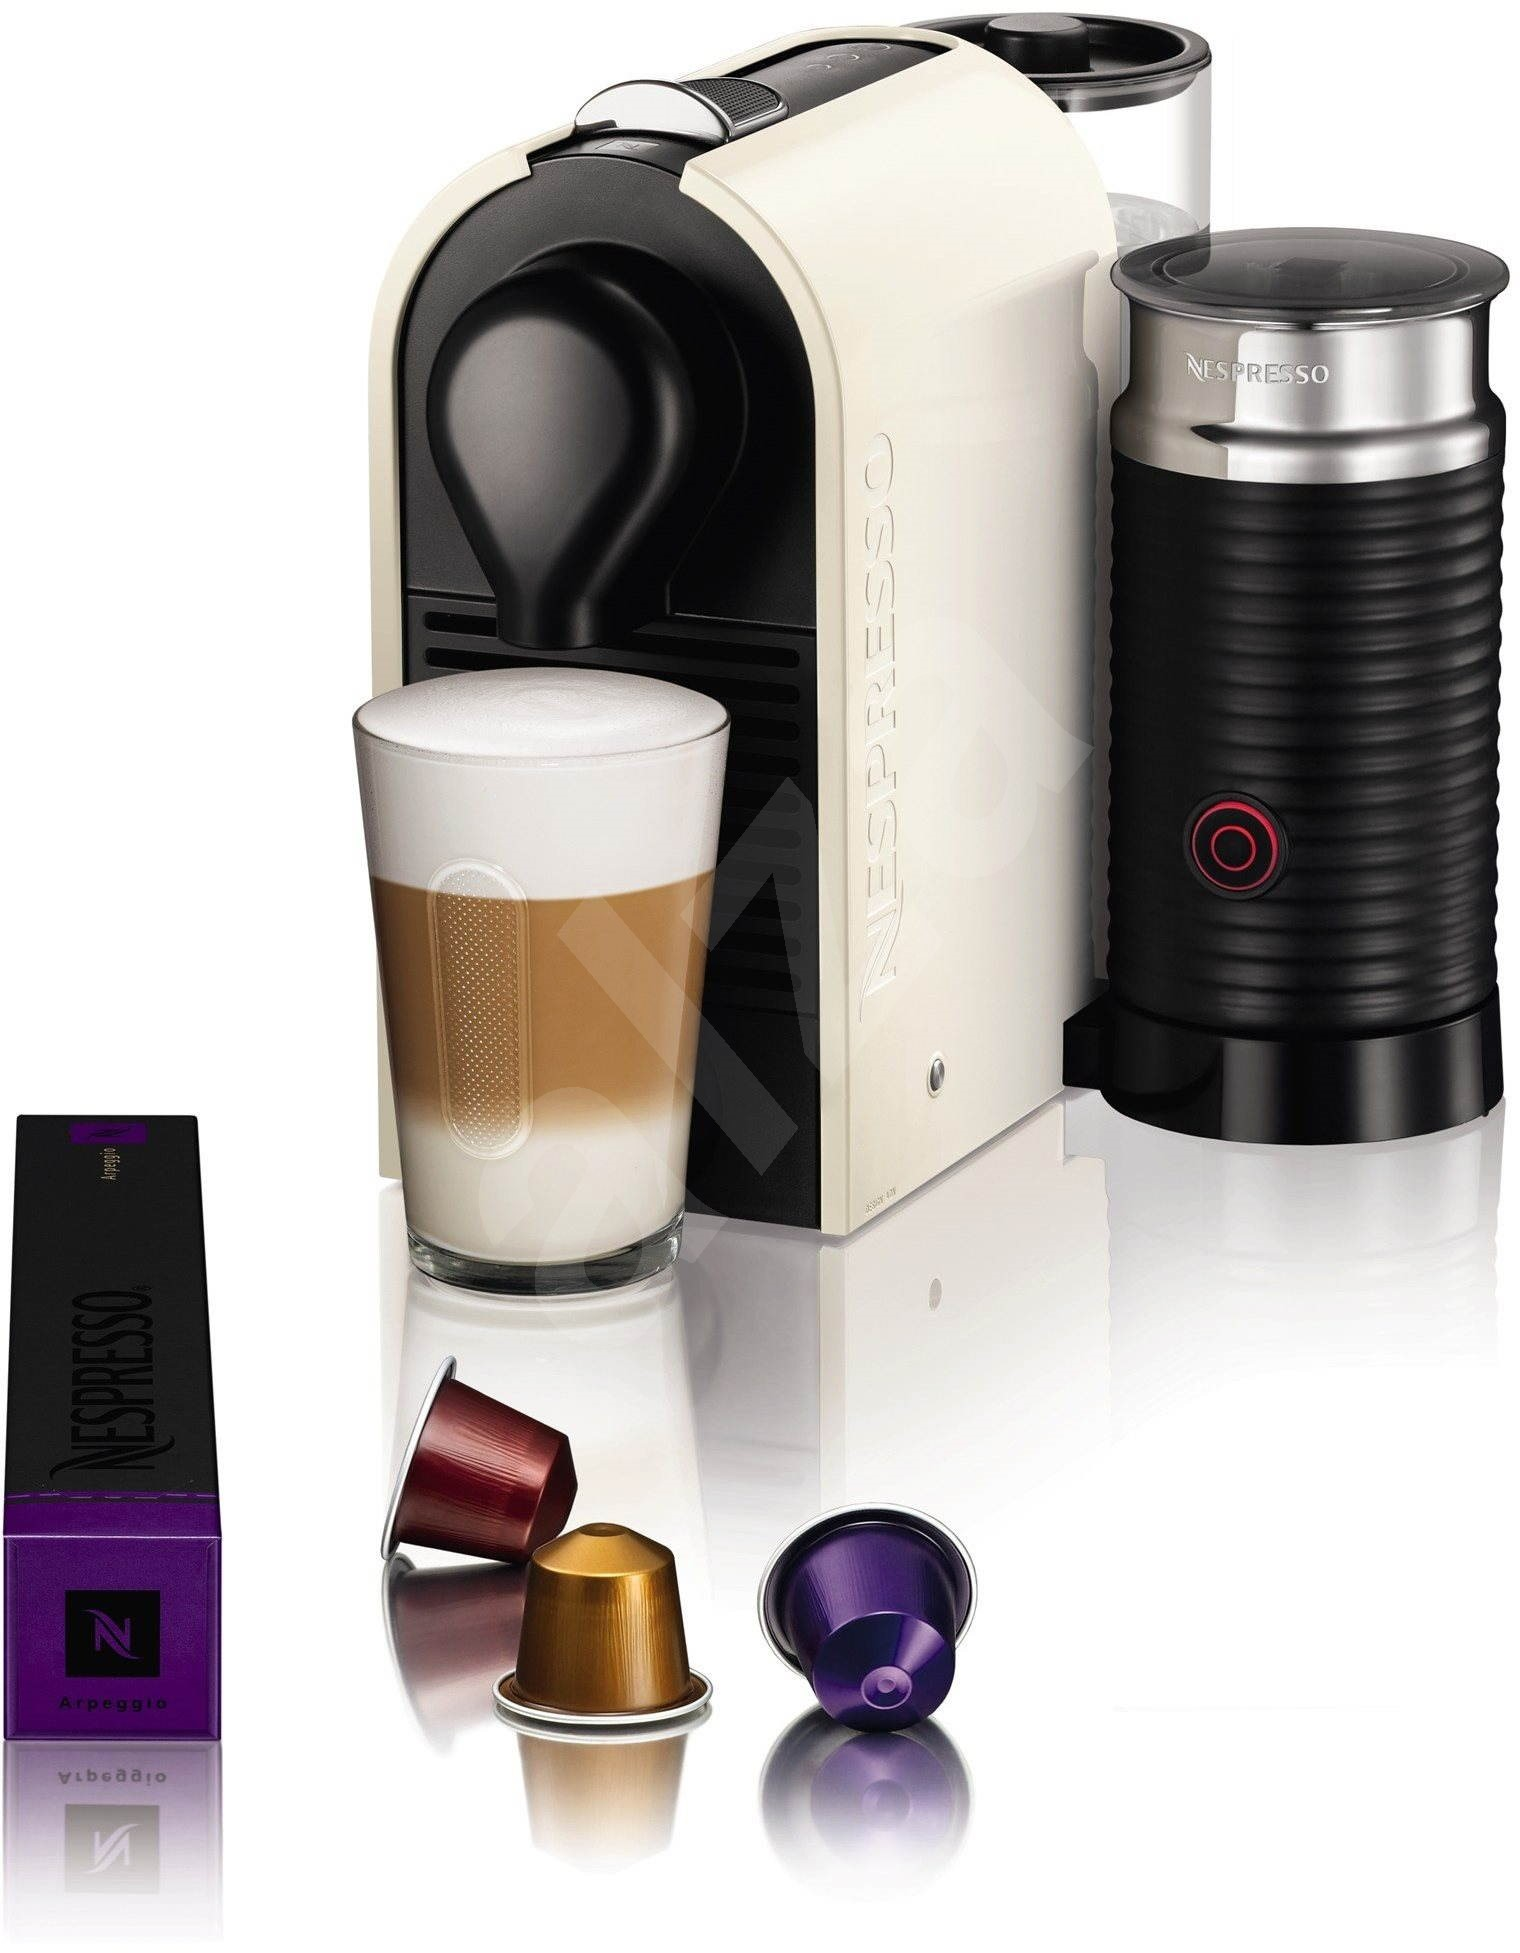 nespresso krups u xn260110 kapsel kaffeemaschine. Black Bedroom Furniture Sets. Home Design Ideas